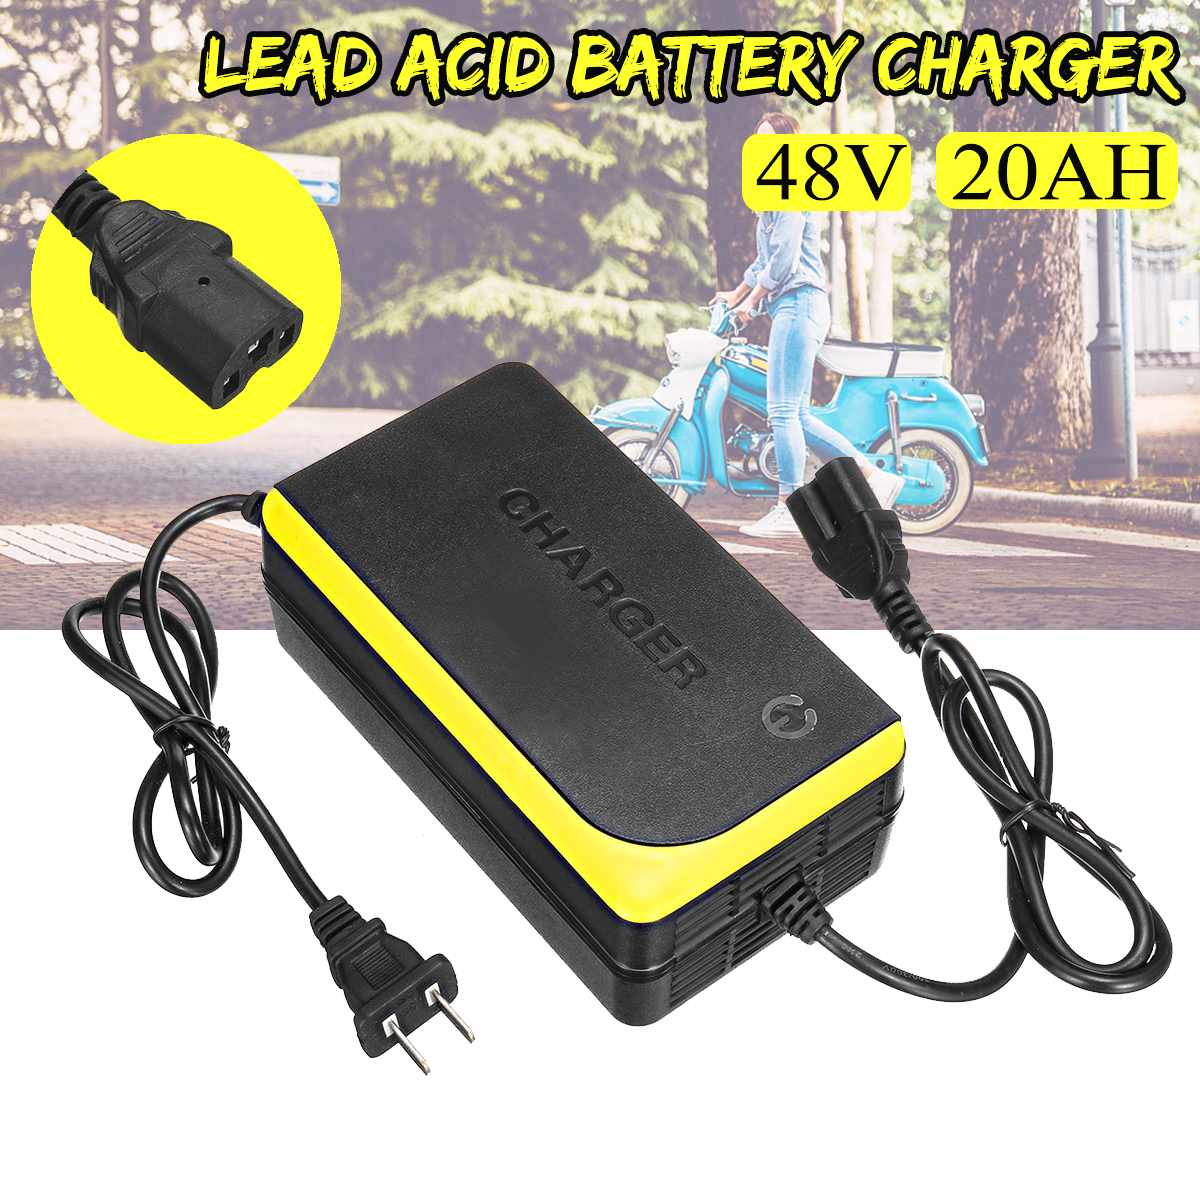 48V 20AH Lead Acid Battery Charger For Electric Bicycle Bike Scooters Chargers